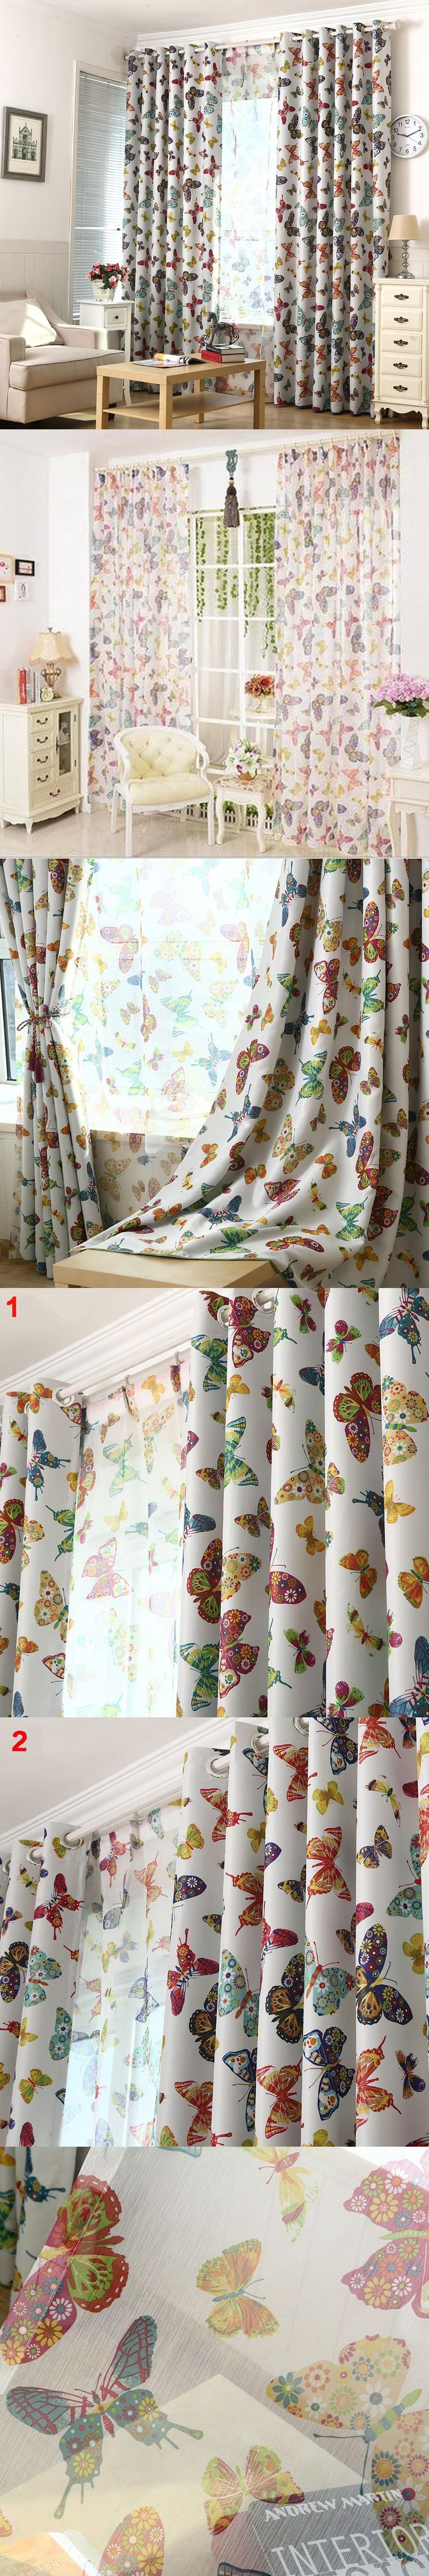 Cheap Blackout Curtains for Inspiring Home Decorating Ideas: Blackout Drapery Panels | Cheap Blackout Curtains | Bedroom Curtains Blackout